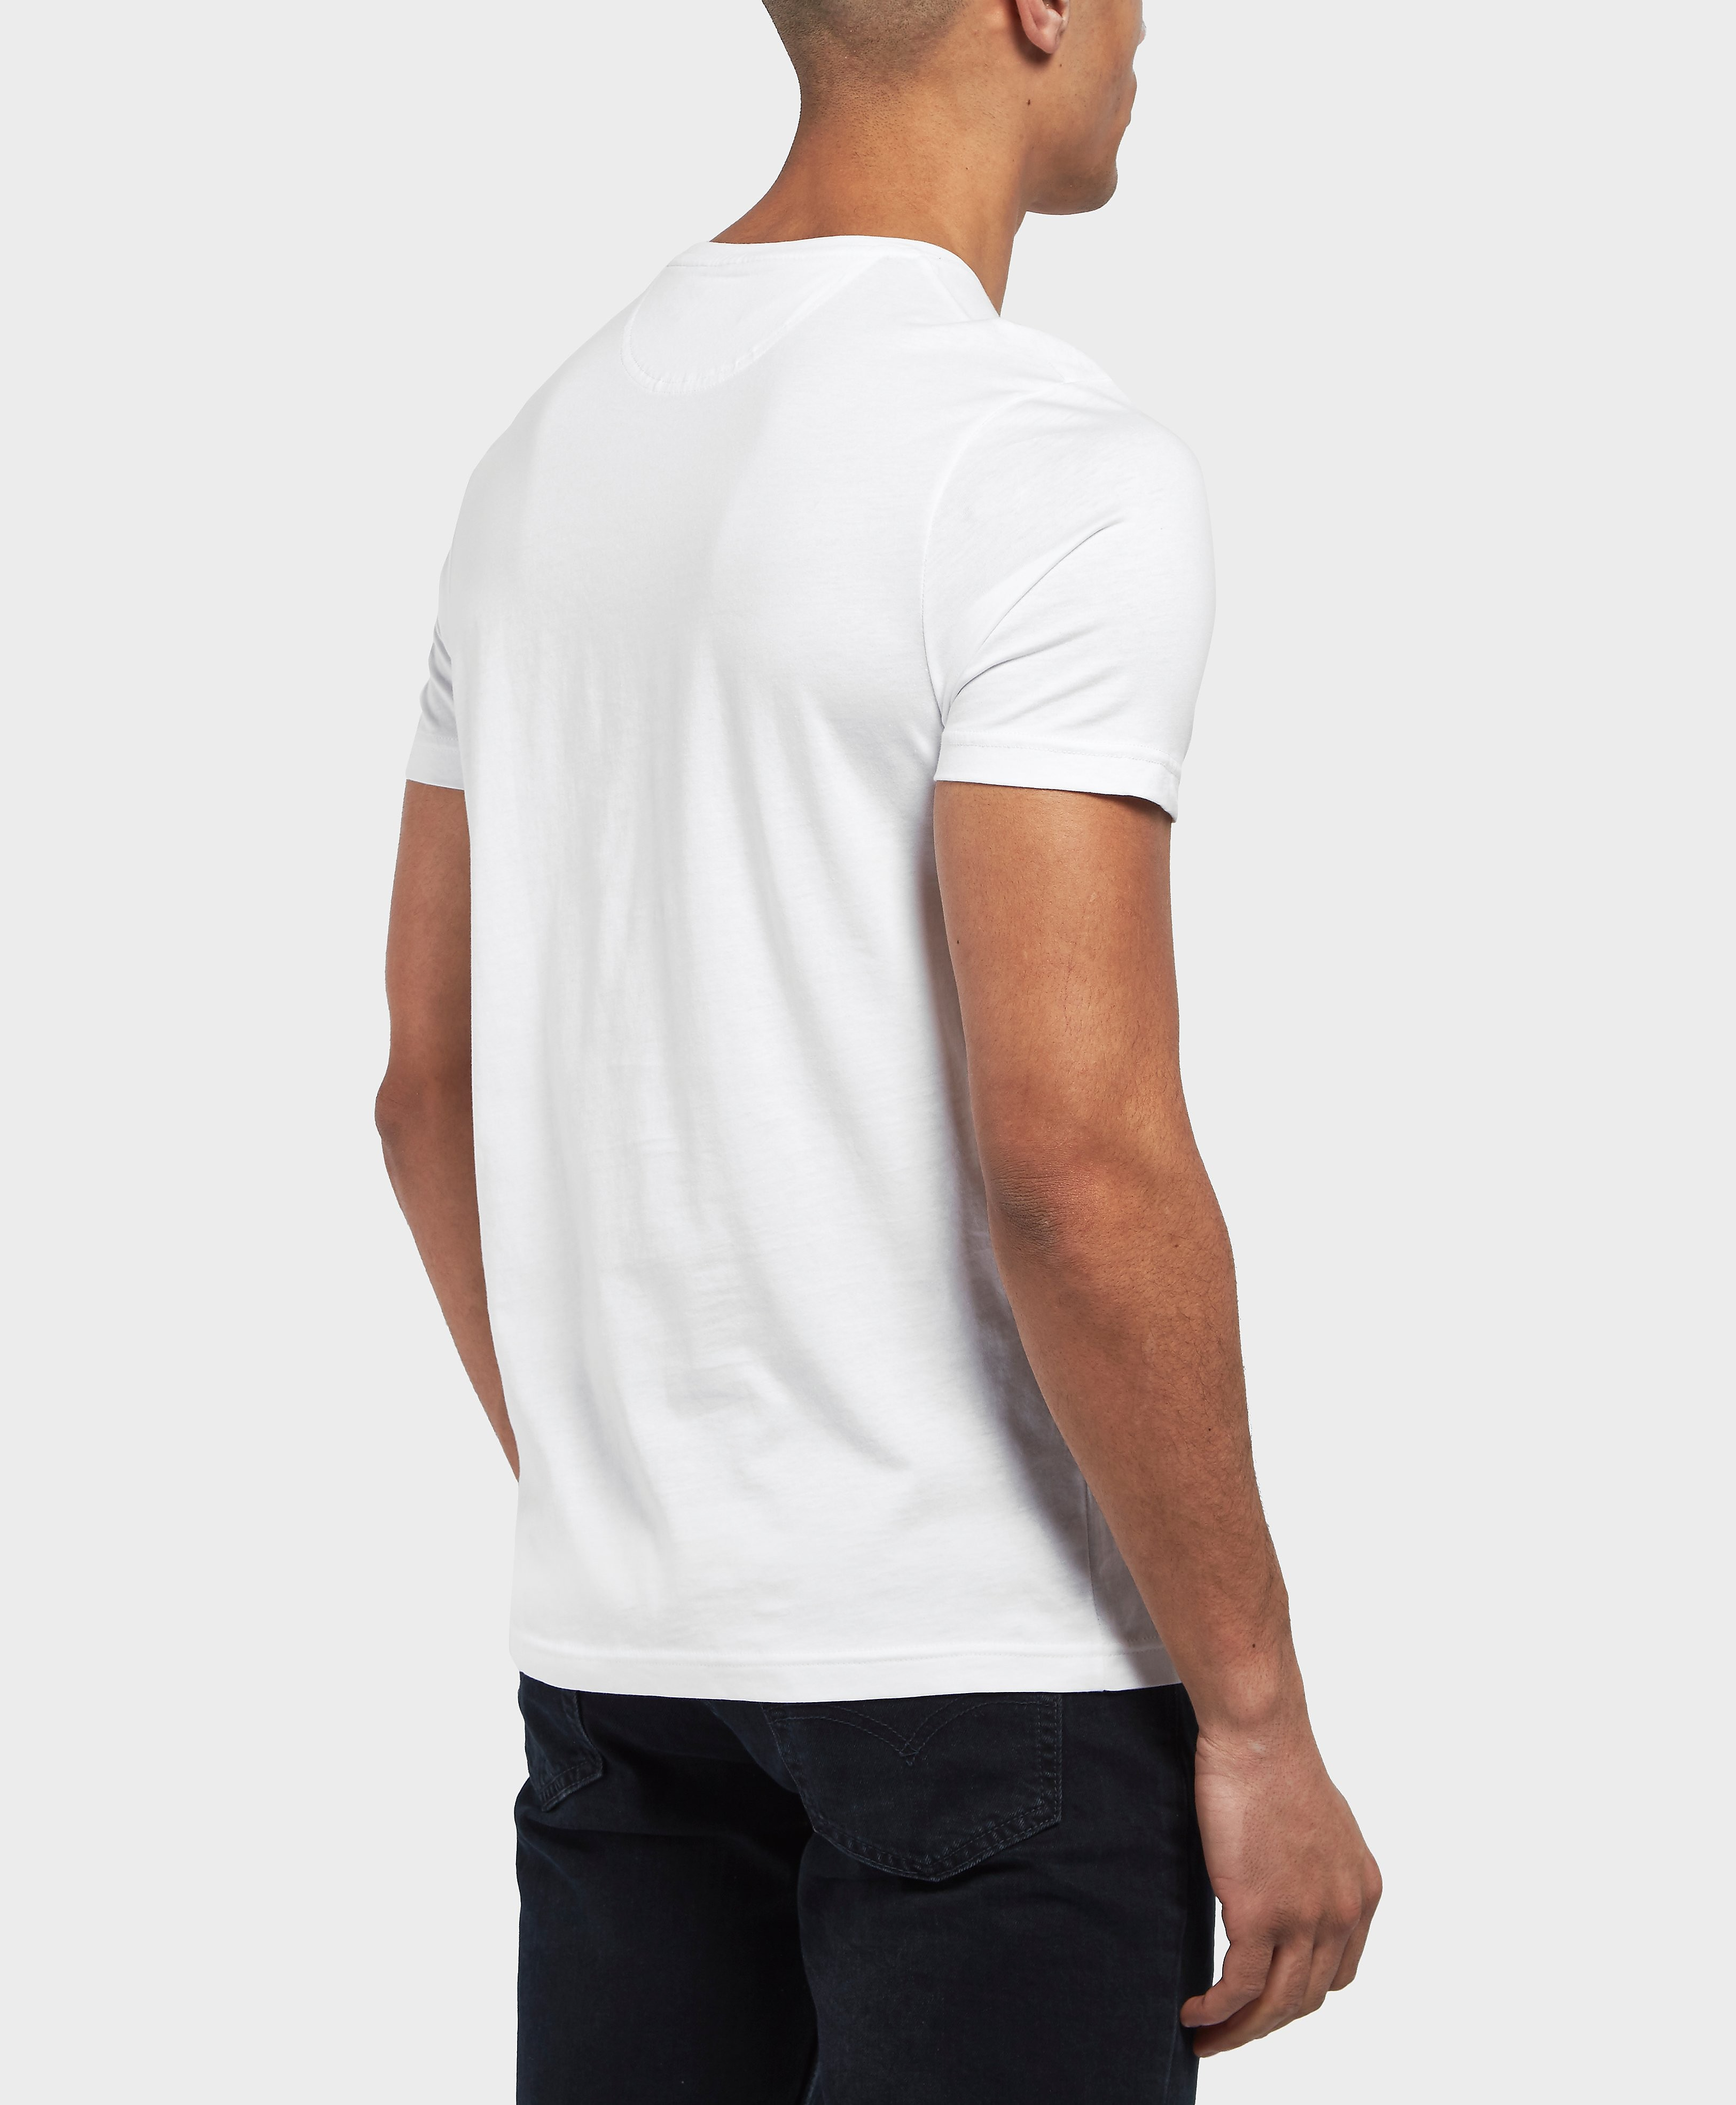 Henri Lloyd Radar Short Sleeve T-Shirt